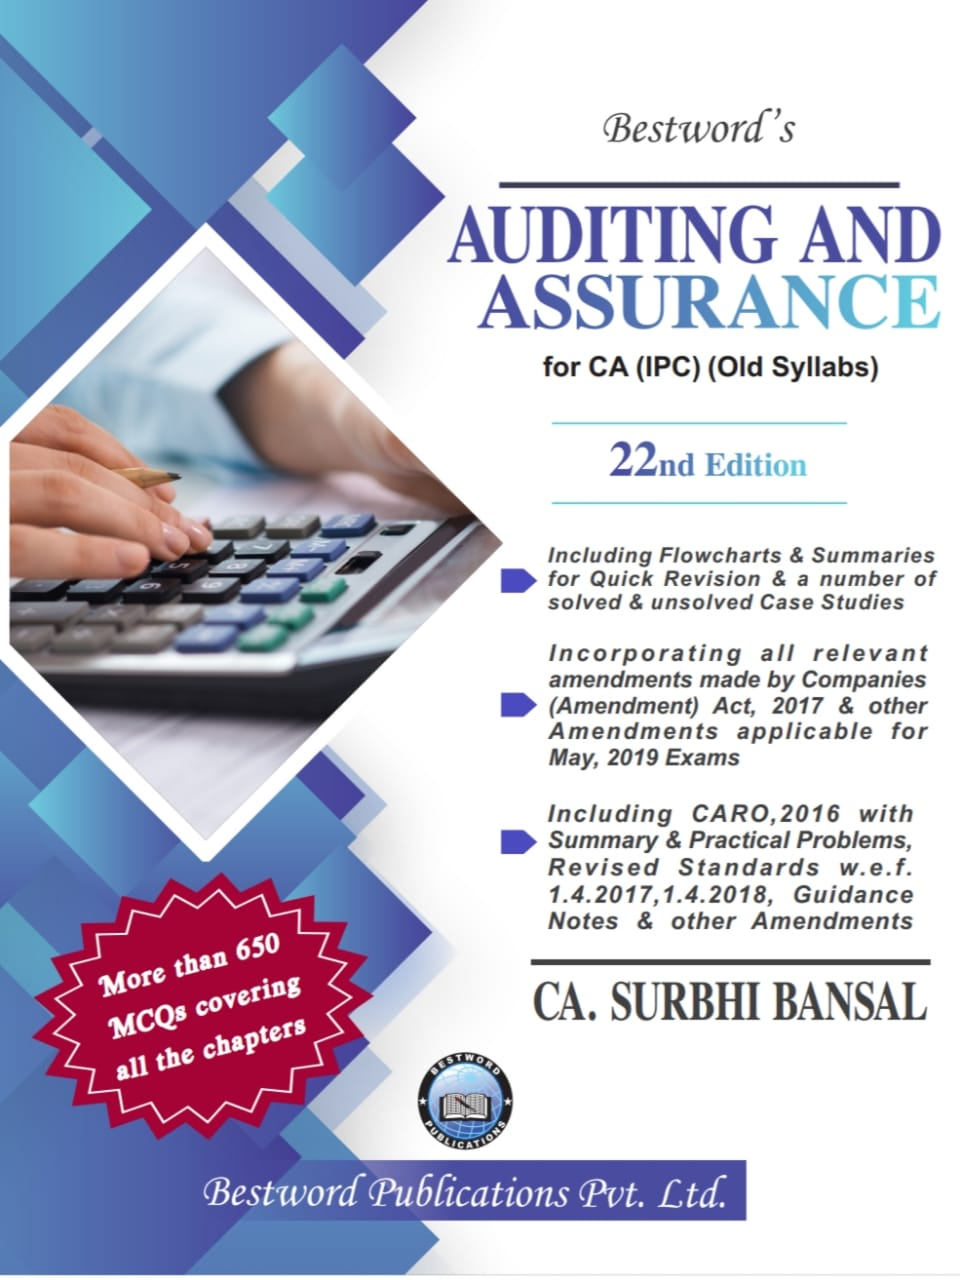 Bestword Auditing and Assurance for CA IPCC by CA Surbhi bansal 22nd Edition for May  2019 Exam (old syllabus)